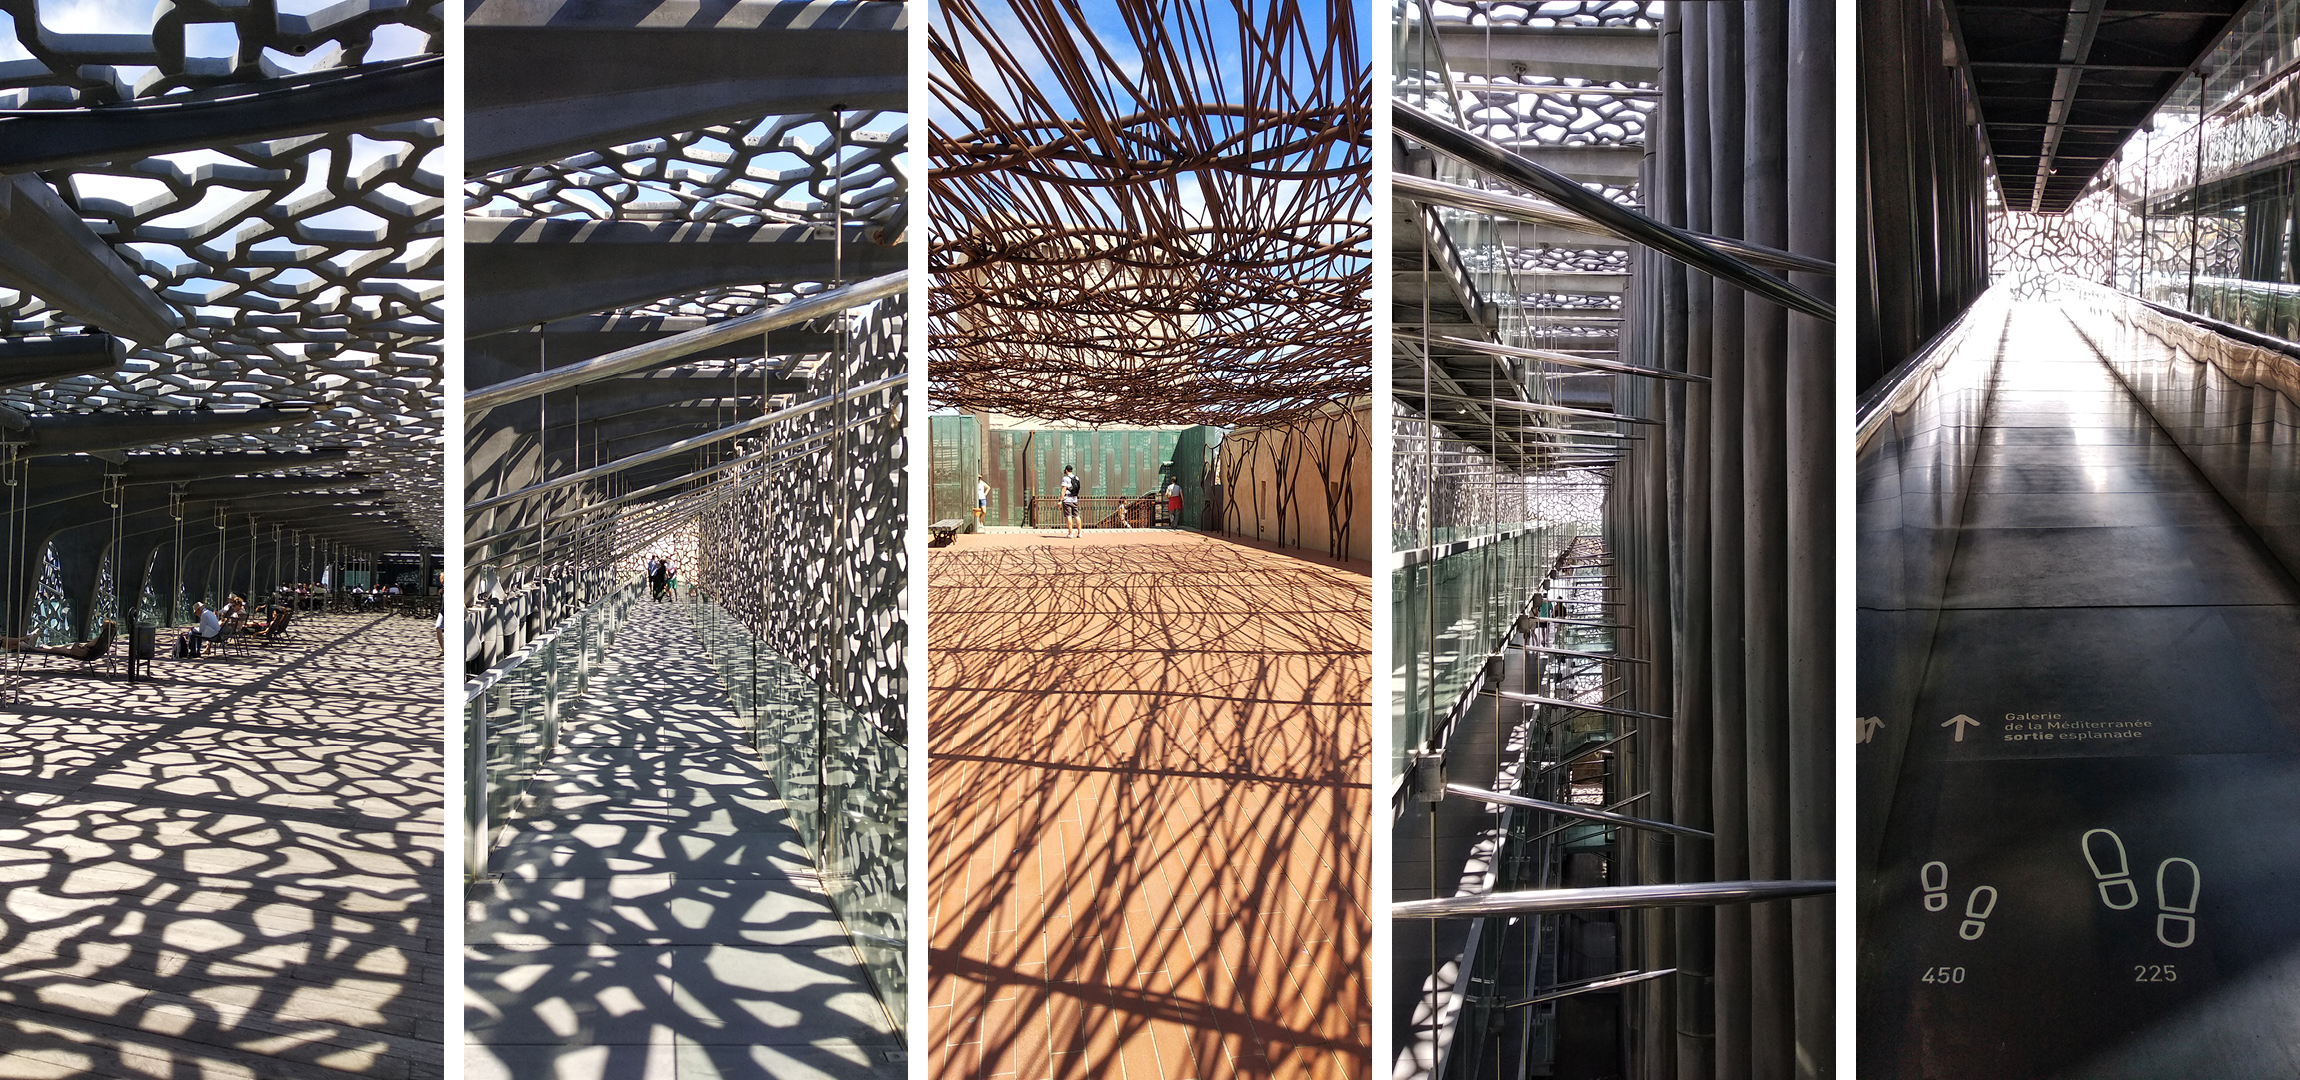 Light becomes the omnipresent artist rendering surfaces in numerous ways at each moment of any day especially in MuCEM (2019)| Marseille | France | STIR